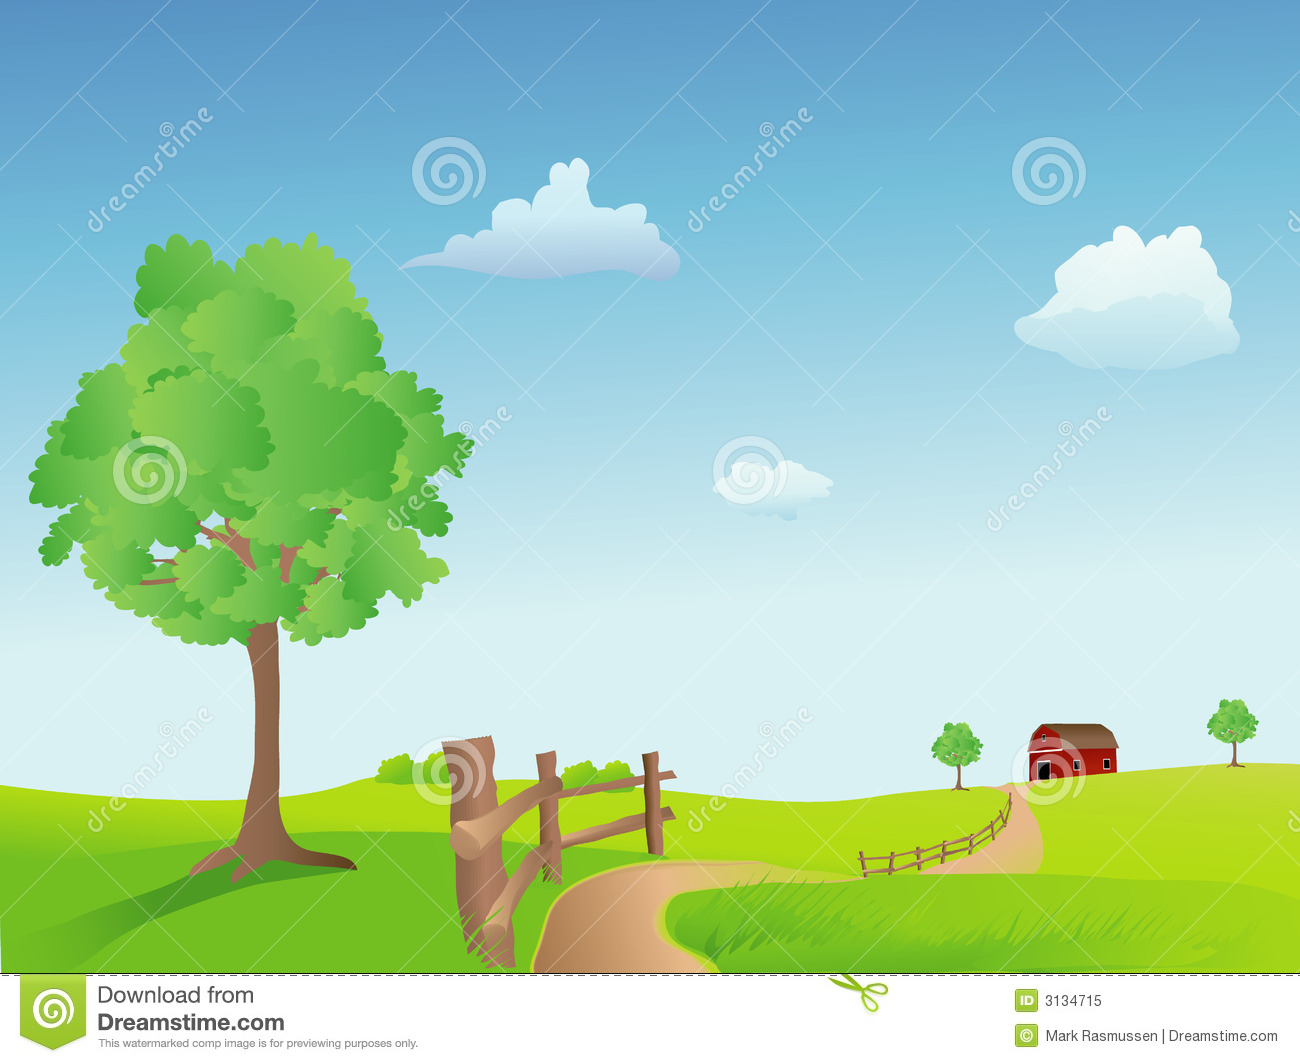 Pasture clipart #3, Download drawings